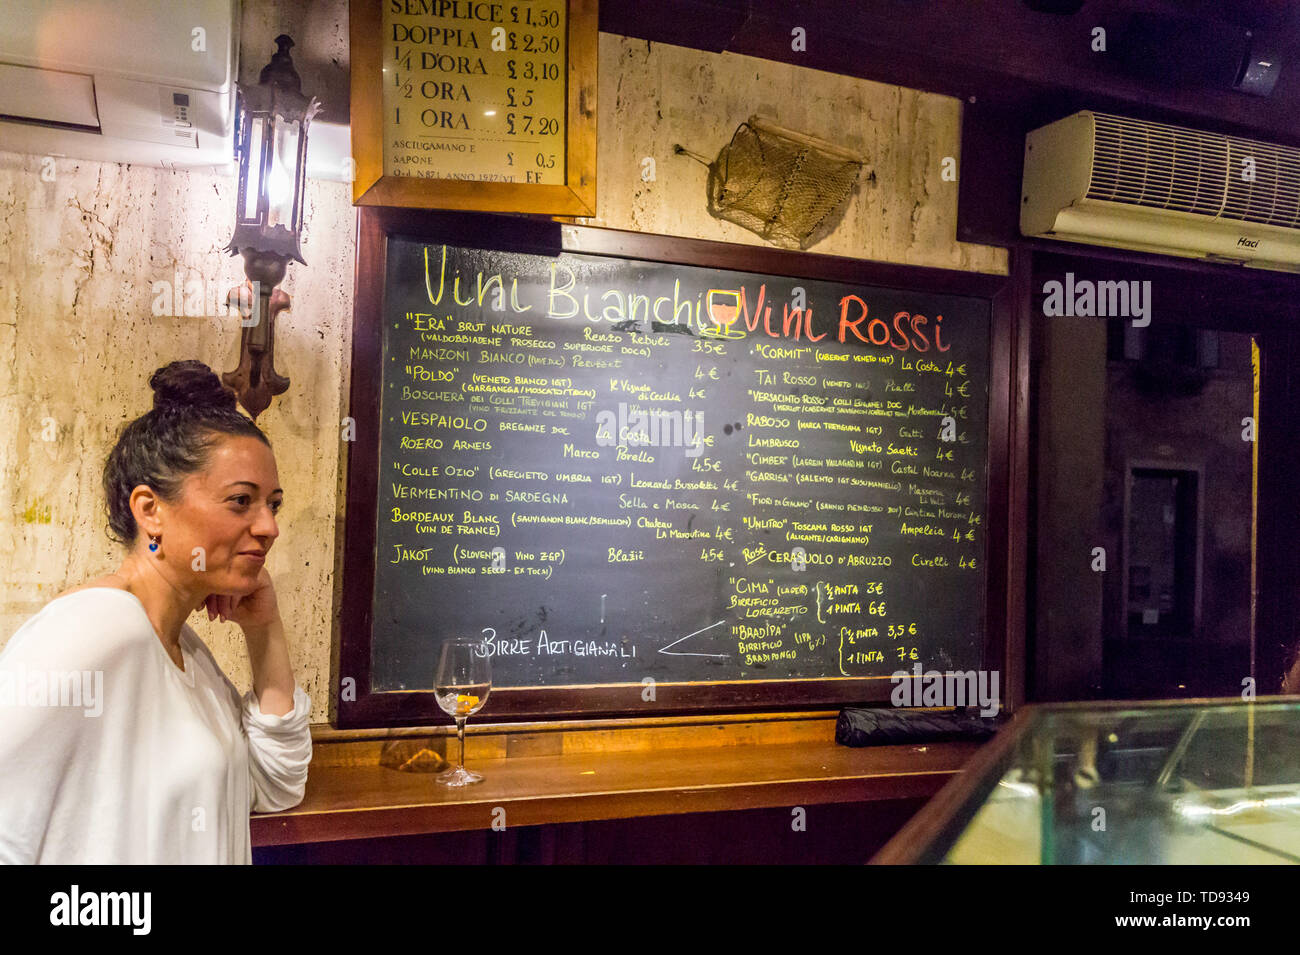 a-young-woman-with-a-glass-of-white-wine-by-the-wine-menu-on-a-blackboard-at-osteria-al-portego-wine-bar-venice-veneto-italy-TD9349.jpg